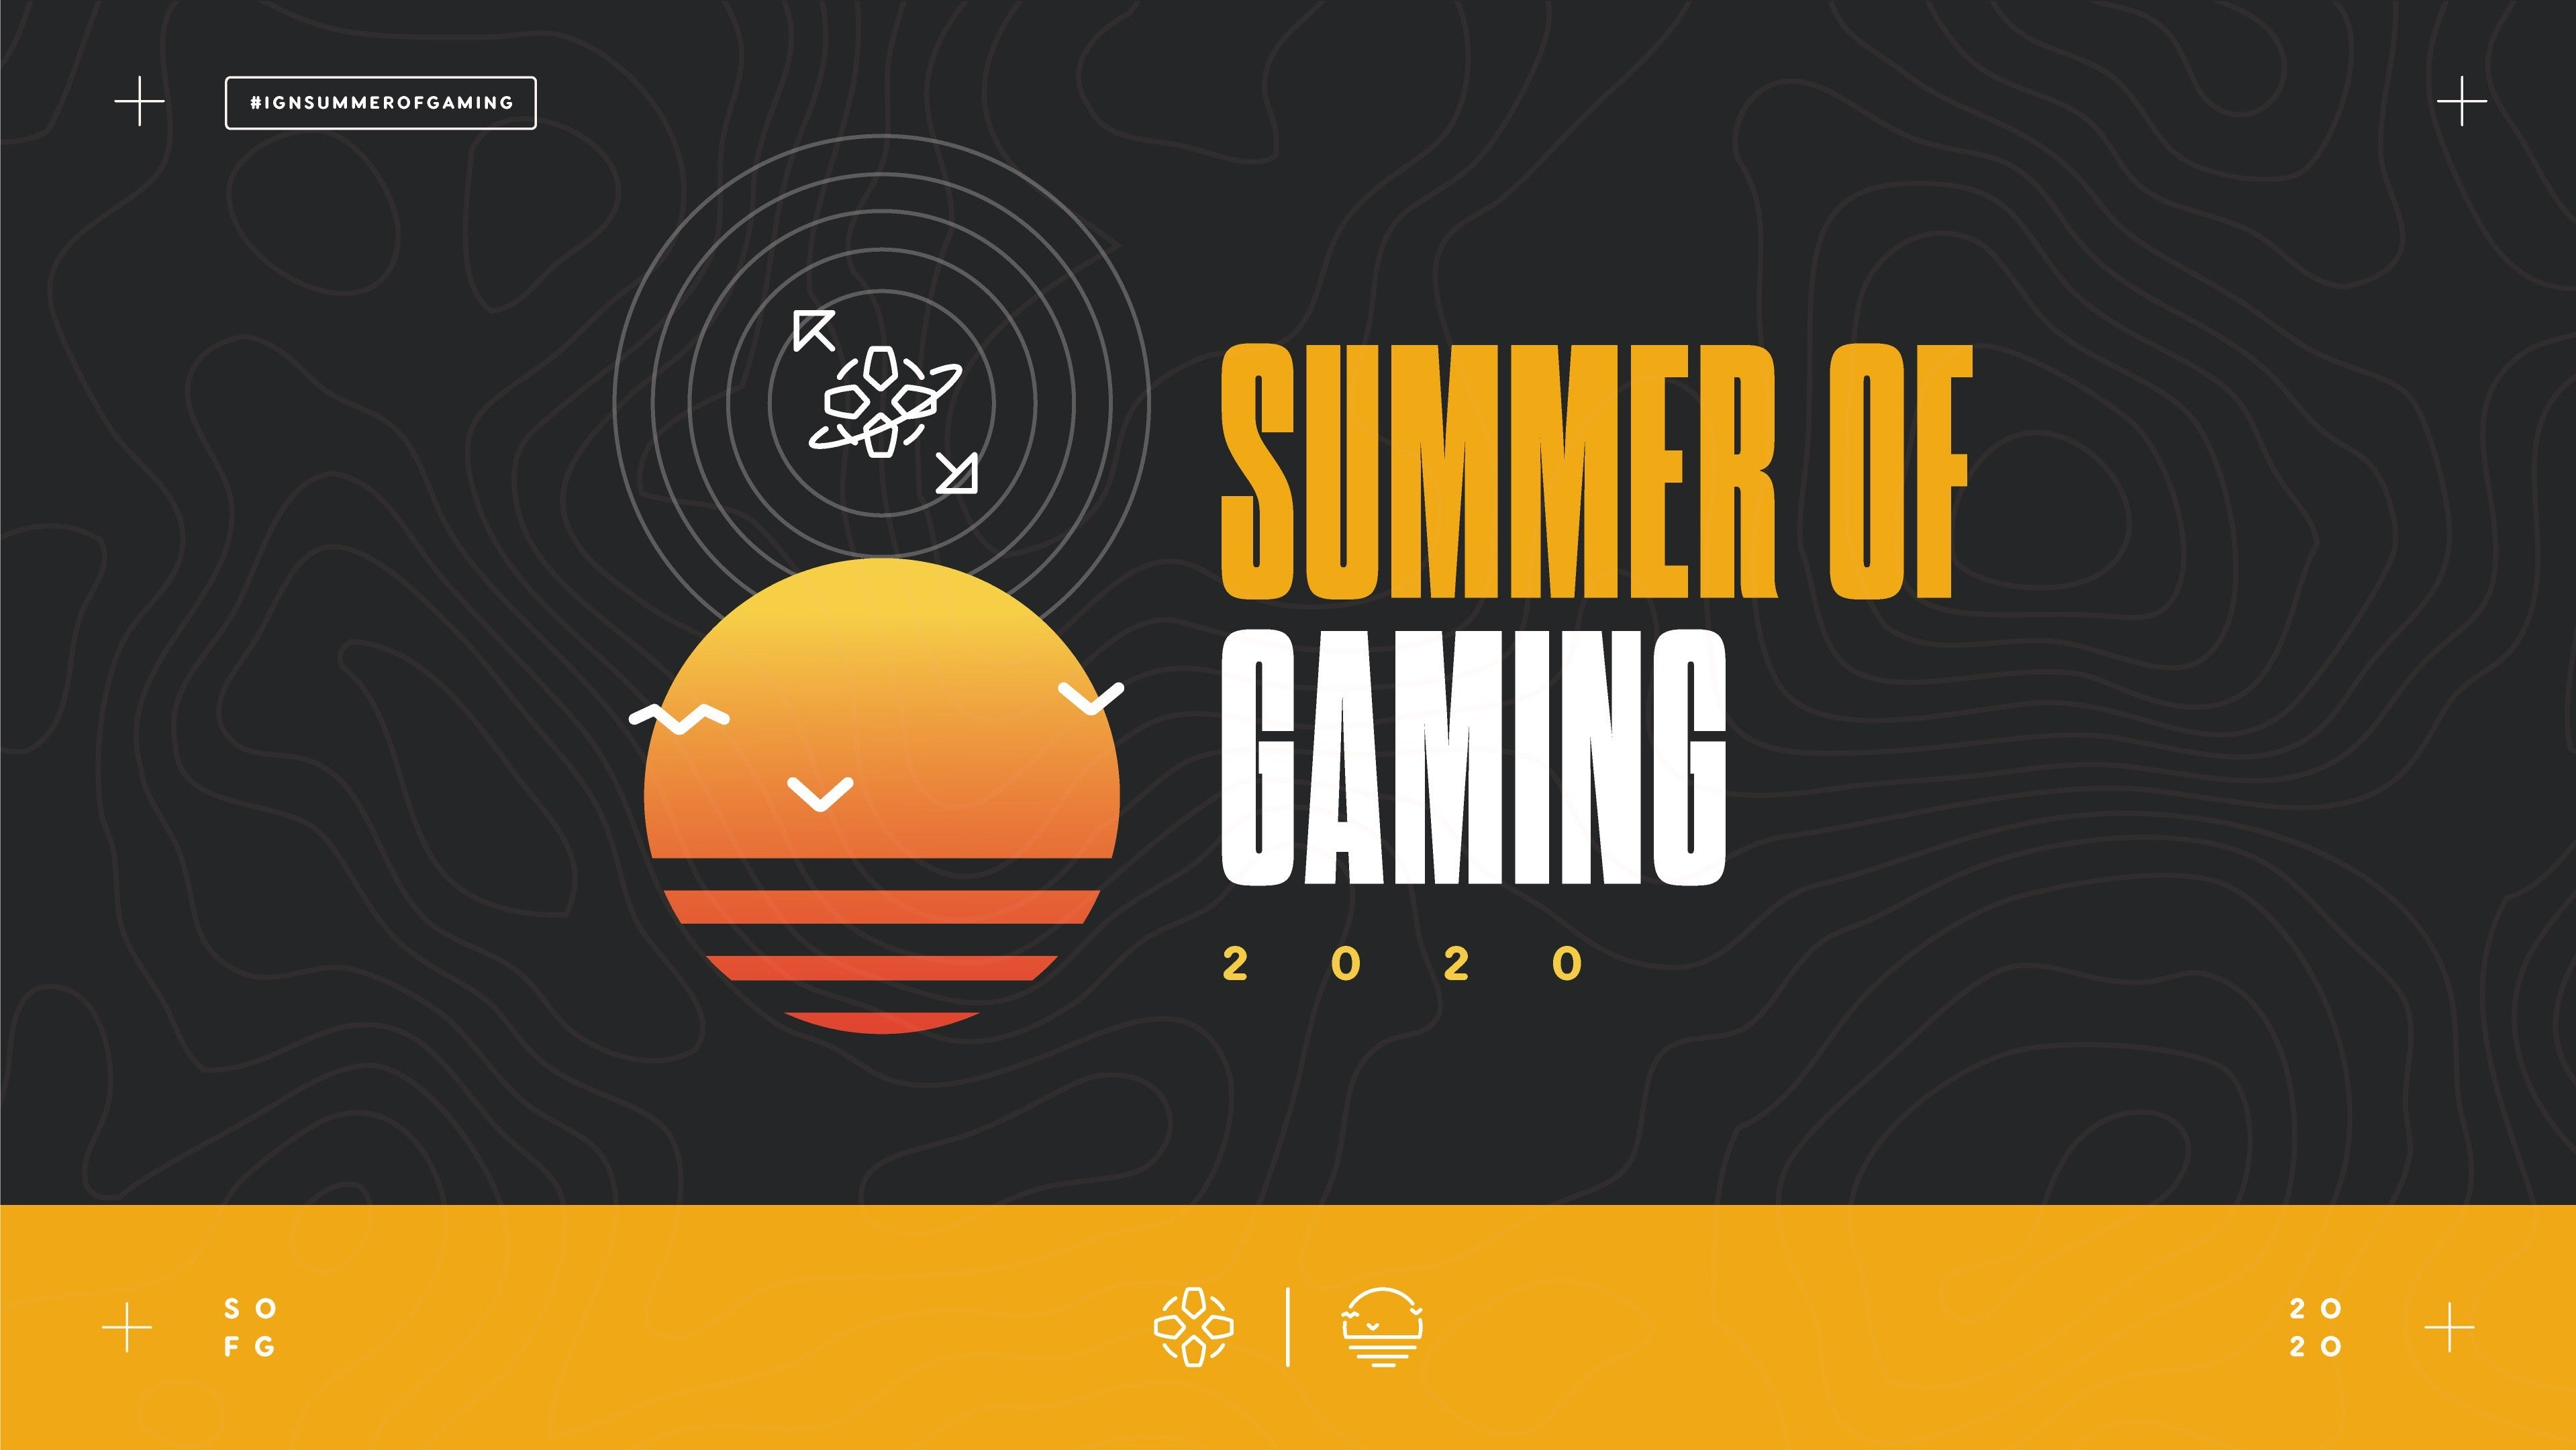 Summer of Gaming